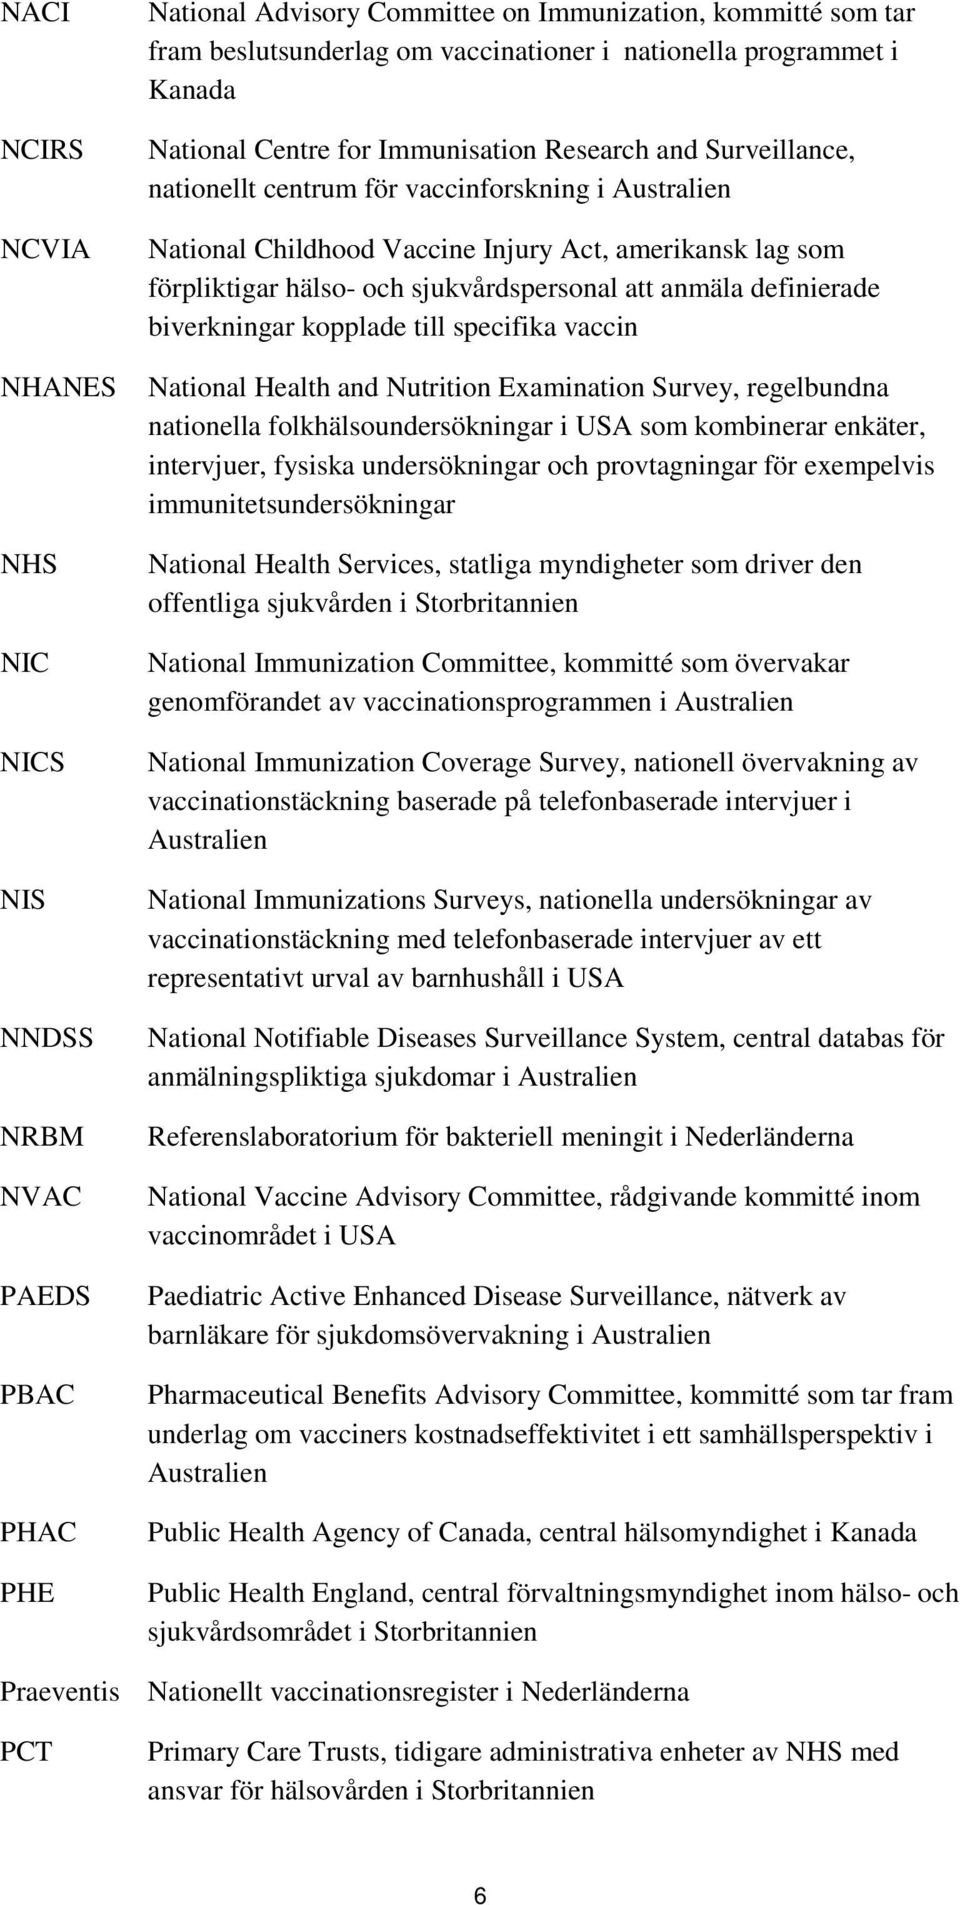 förpliktigar hälso- och sjukvårdspersonal att anmäla definierade biverkningar kopplade till specifika vaccin National Health and Nutrition Examination Survey, regelbundna nationella